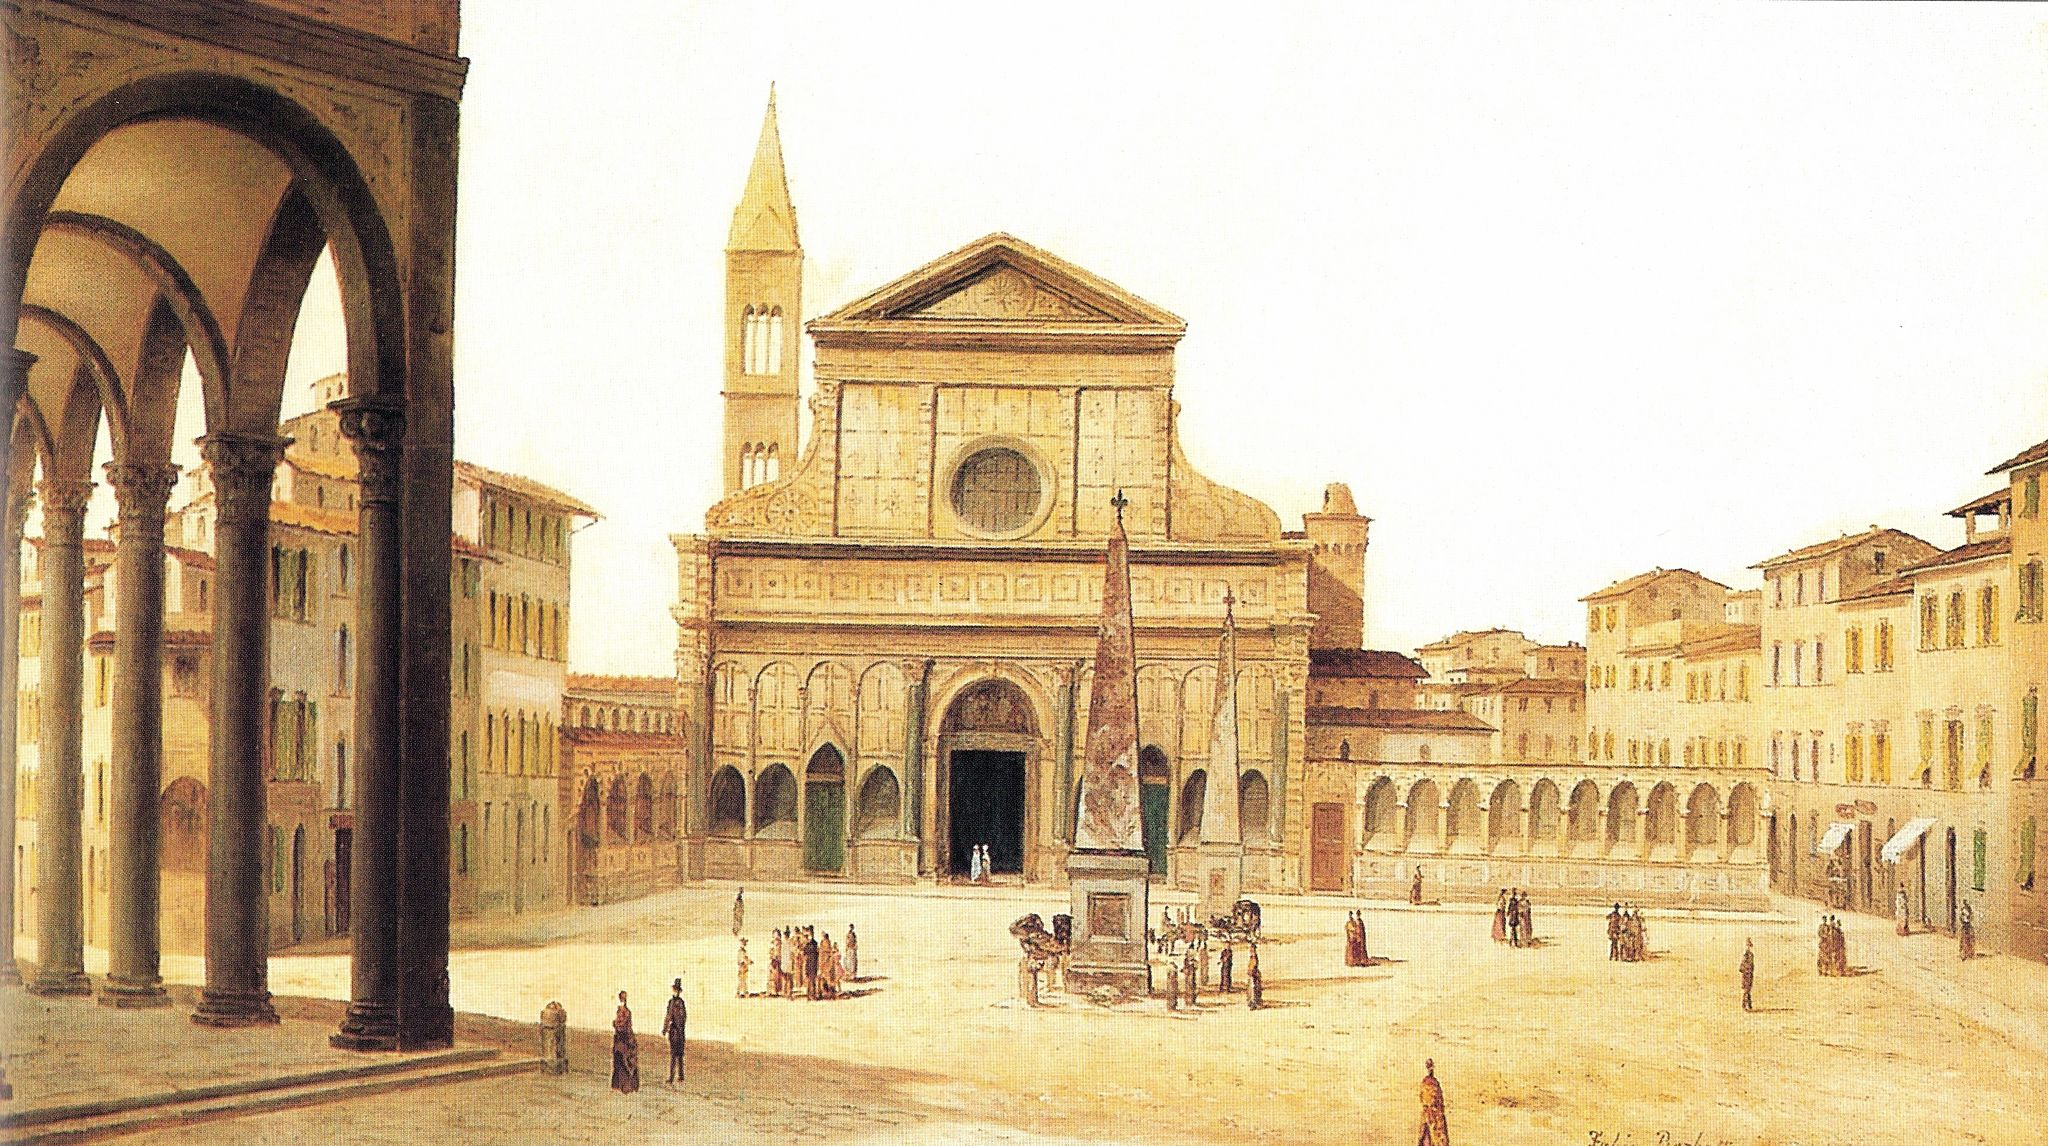 View of Ancient Florence by Fabio Borbottoni 1820-1902